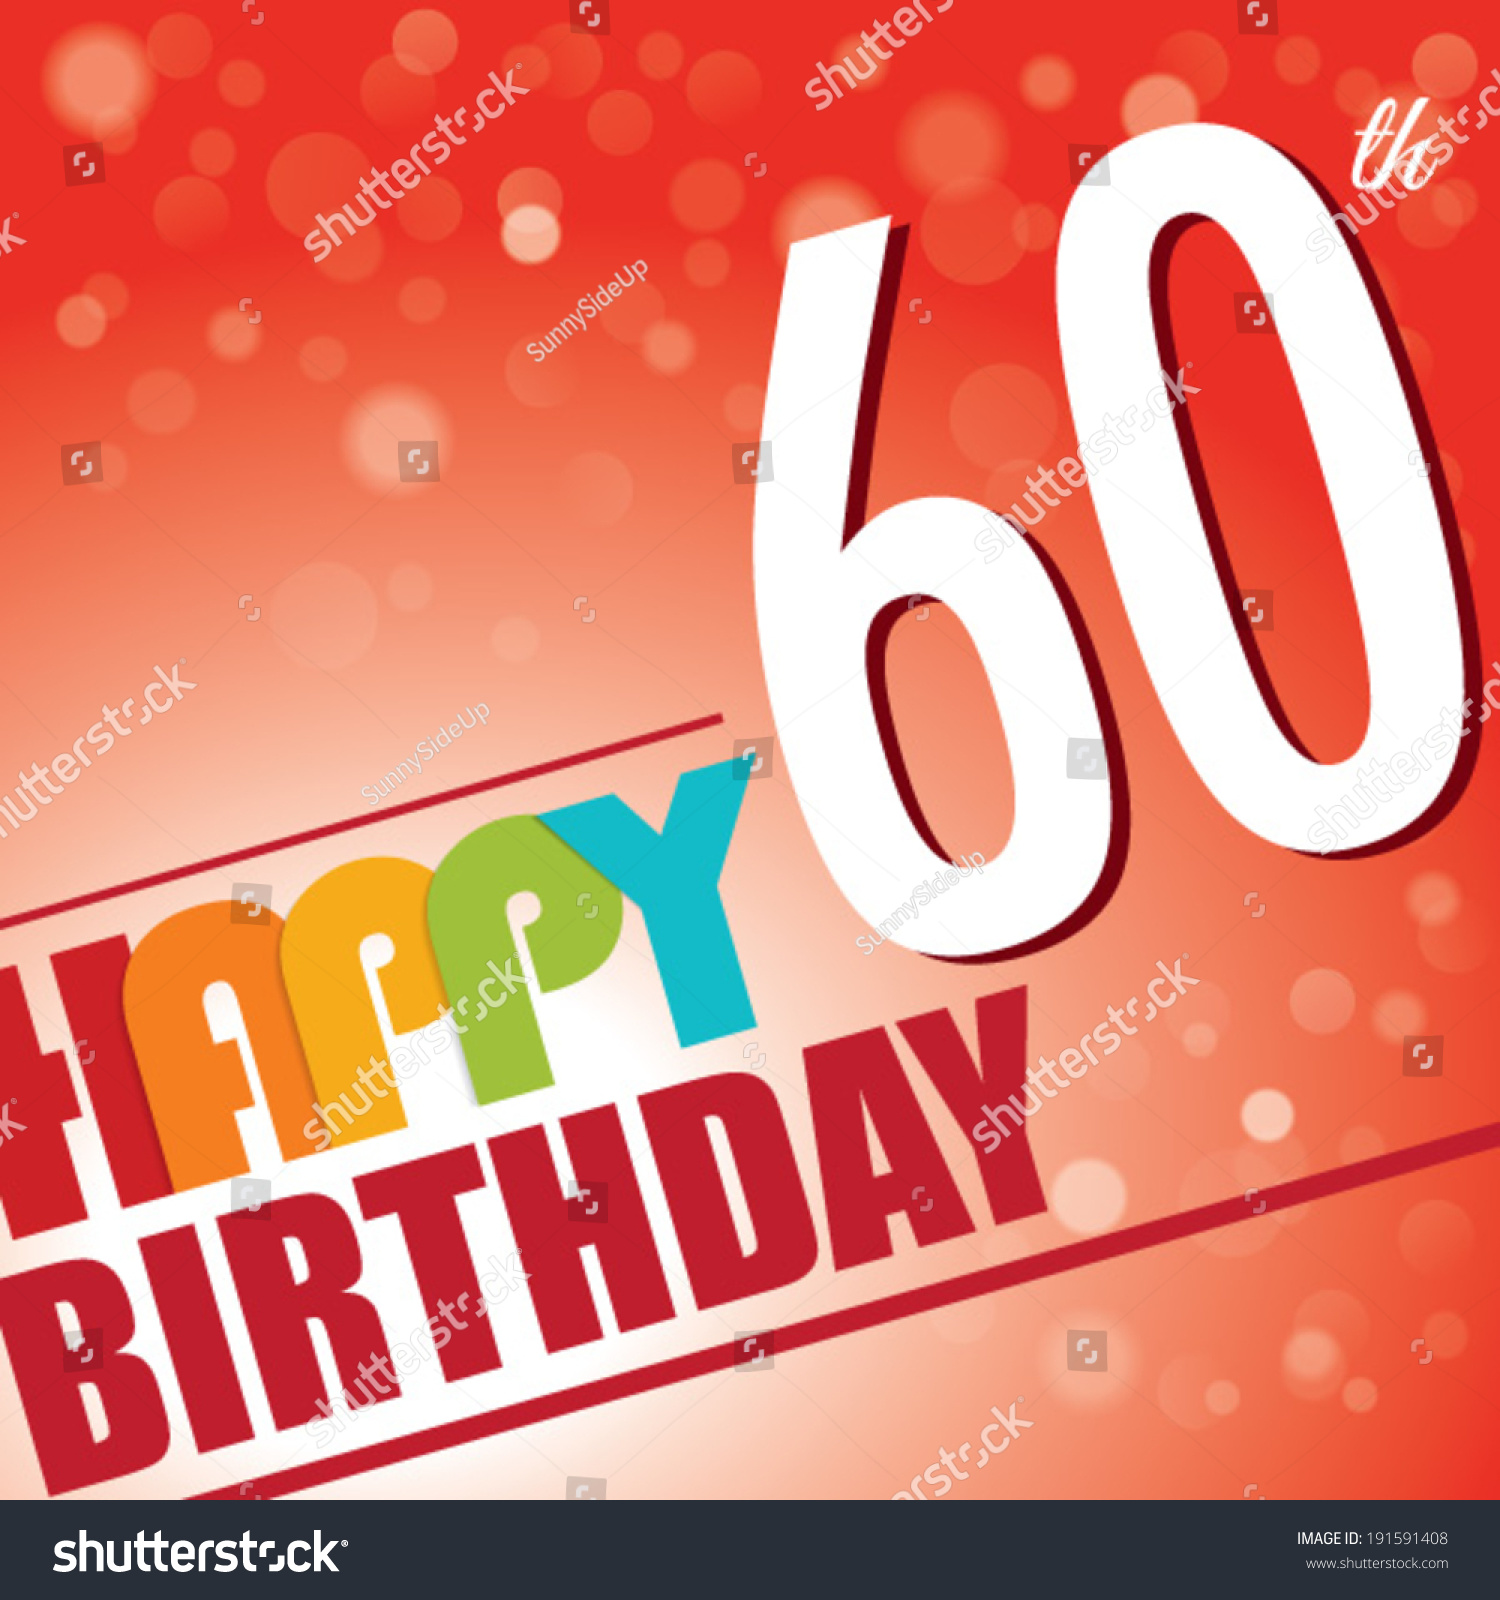 60th Birthday Party Invitetemplate Design Bright Stock Vector ...